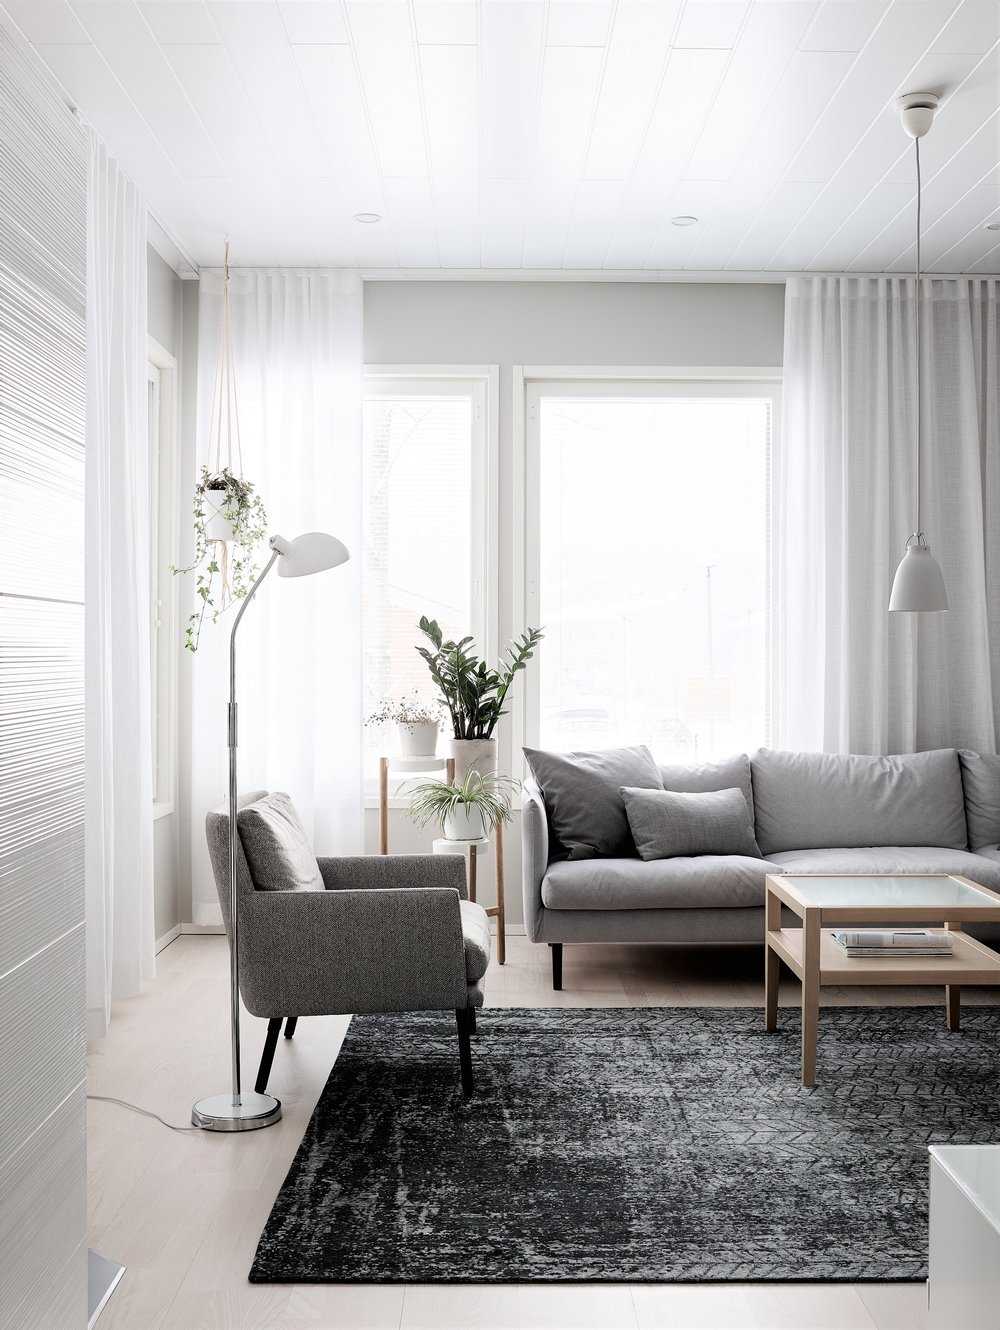 interior-anna-koponen-photo-krista-keltanen-02.jpg